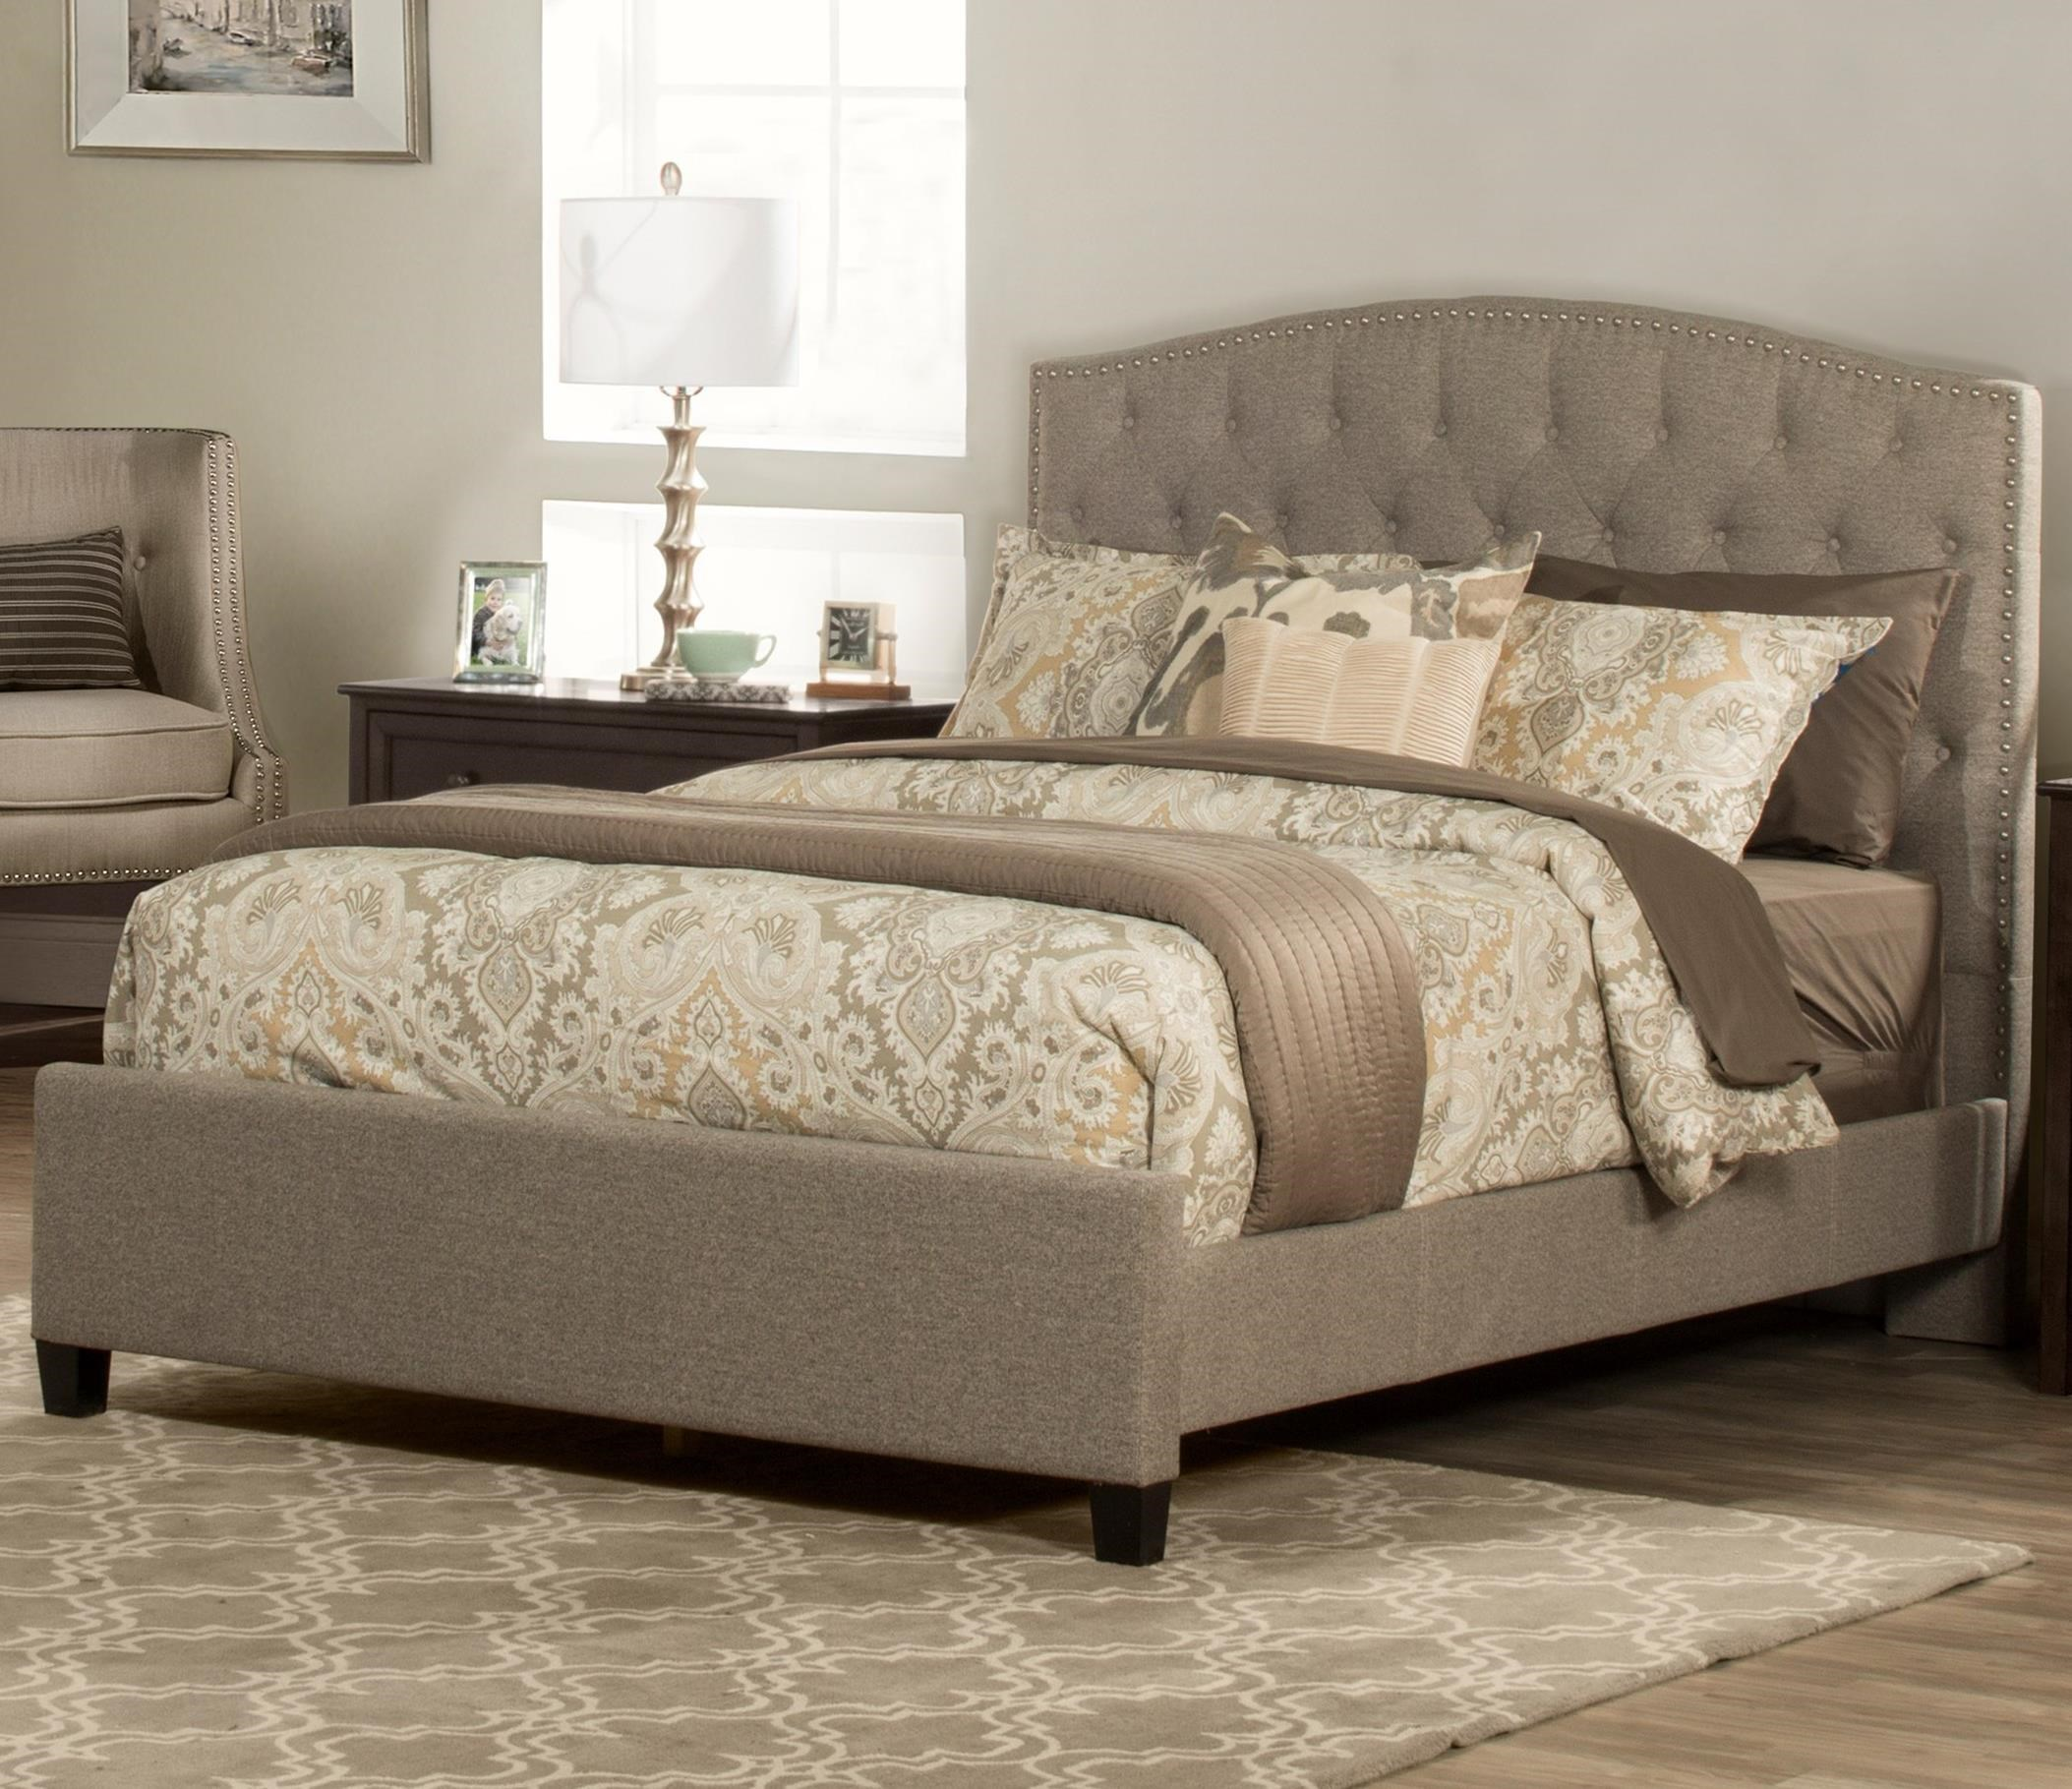 Lila Queen Upholstered Bed by Hillsdale at Crowley Furniture & Mattress